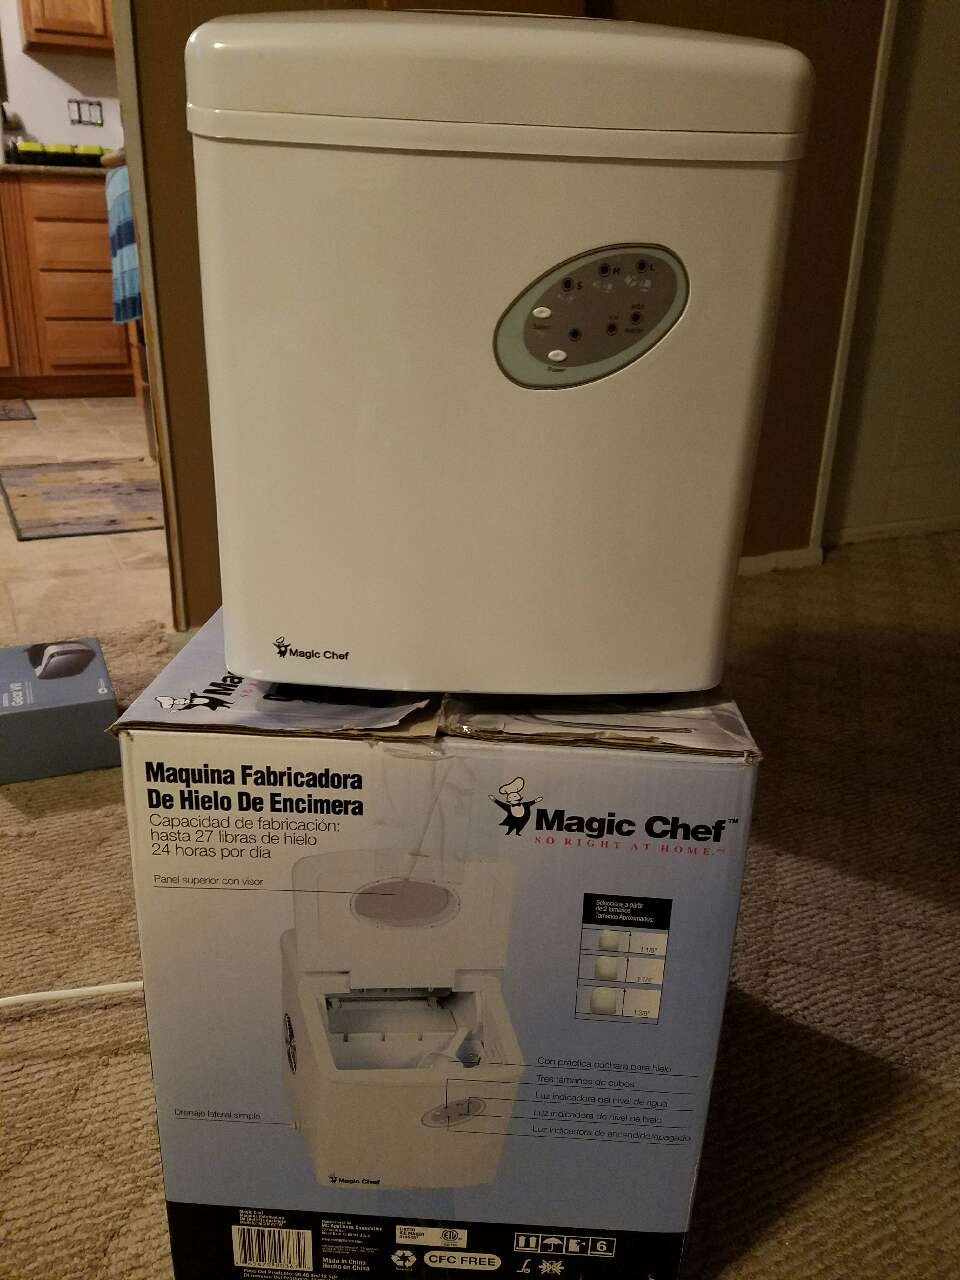 Countertop Ice Maker How Does It Work : Home Virginia Hampton Home and Garden Countertop Ice Maker